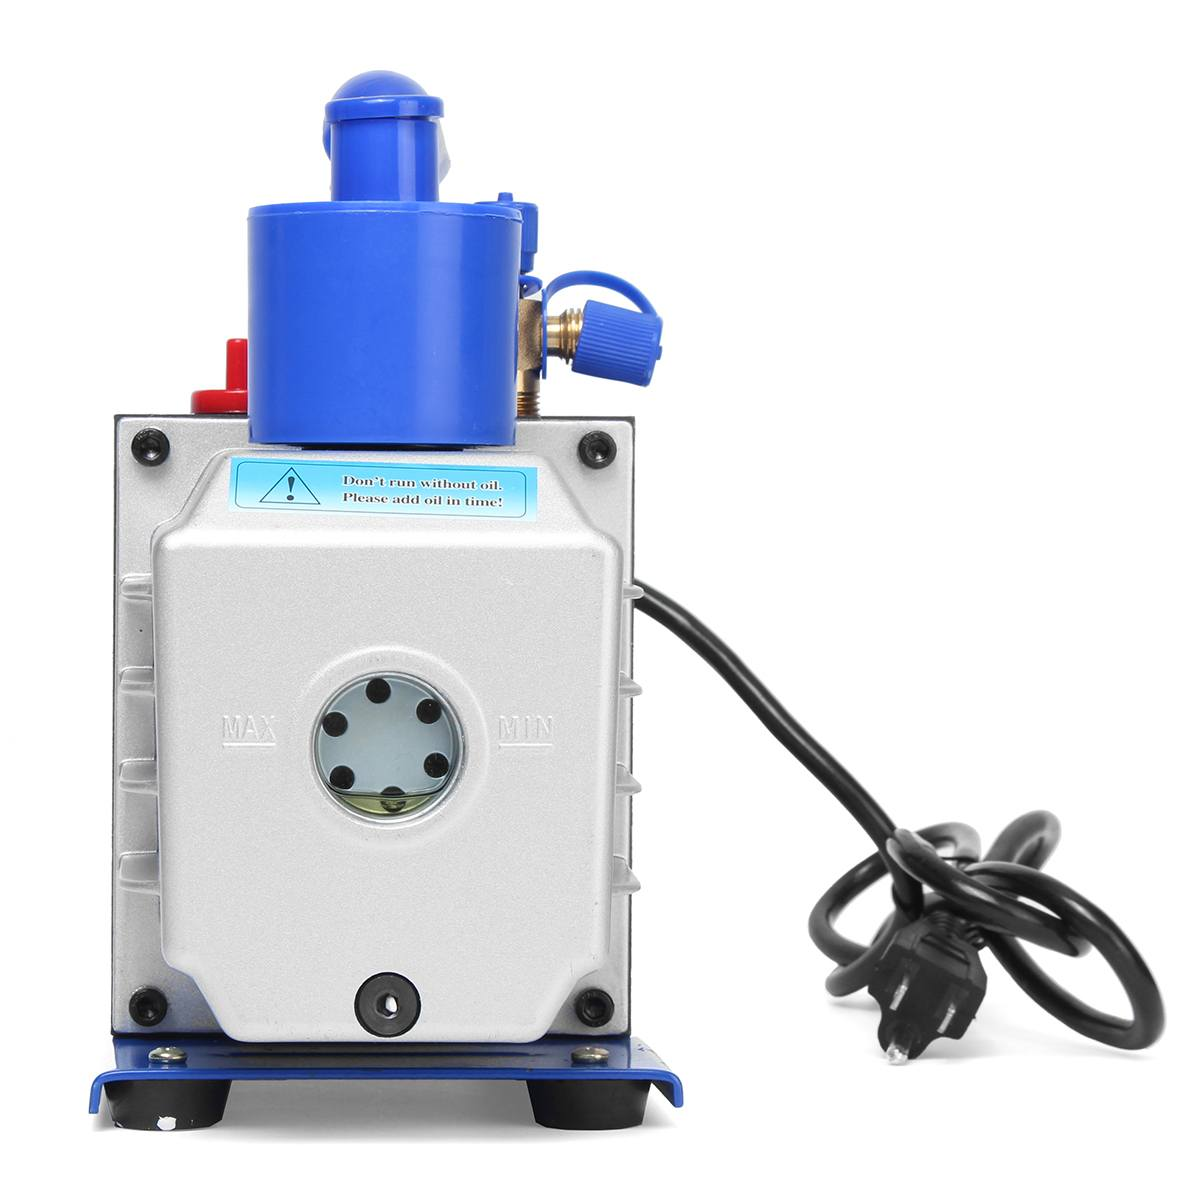 US $205 38 40% OFF|R134A R22 R410A 4 8CFM Vacuum Pump HVA/C Refrigerant  W/4VALVE MANIFOLD GAUGE Pumps Parts Mini Vacuum Pump For Air  Conditioning-in